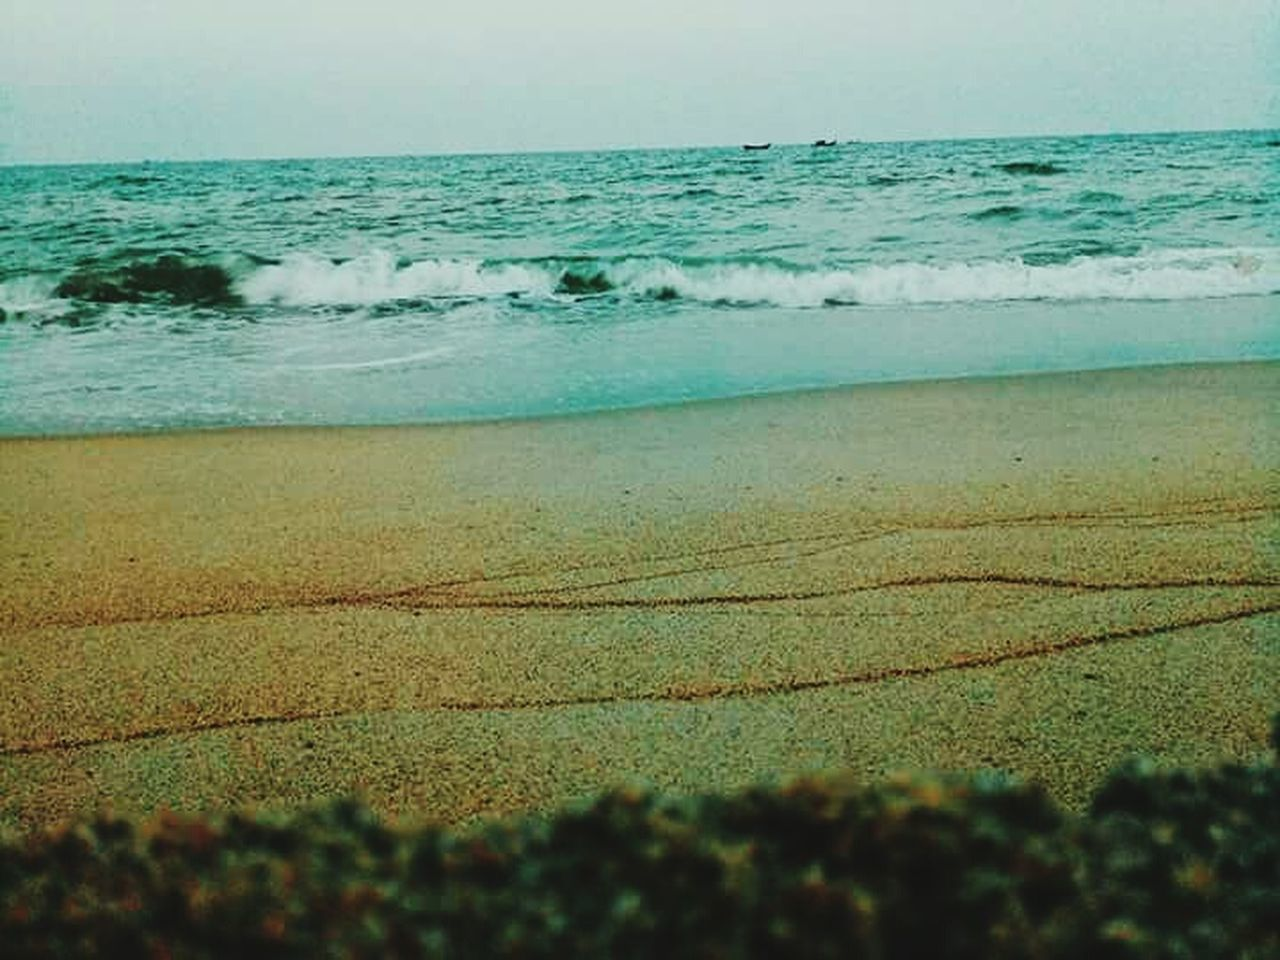 sea, beach, water, beauty in nature, wave, nature, shore, scenics, horizon over water, sand, tranquility, tranquil scene, outdoors, day, no people, vacations, sky